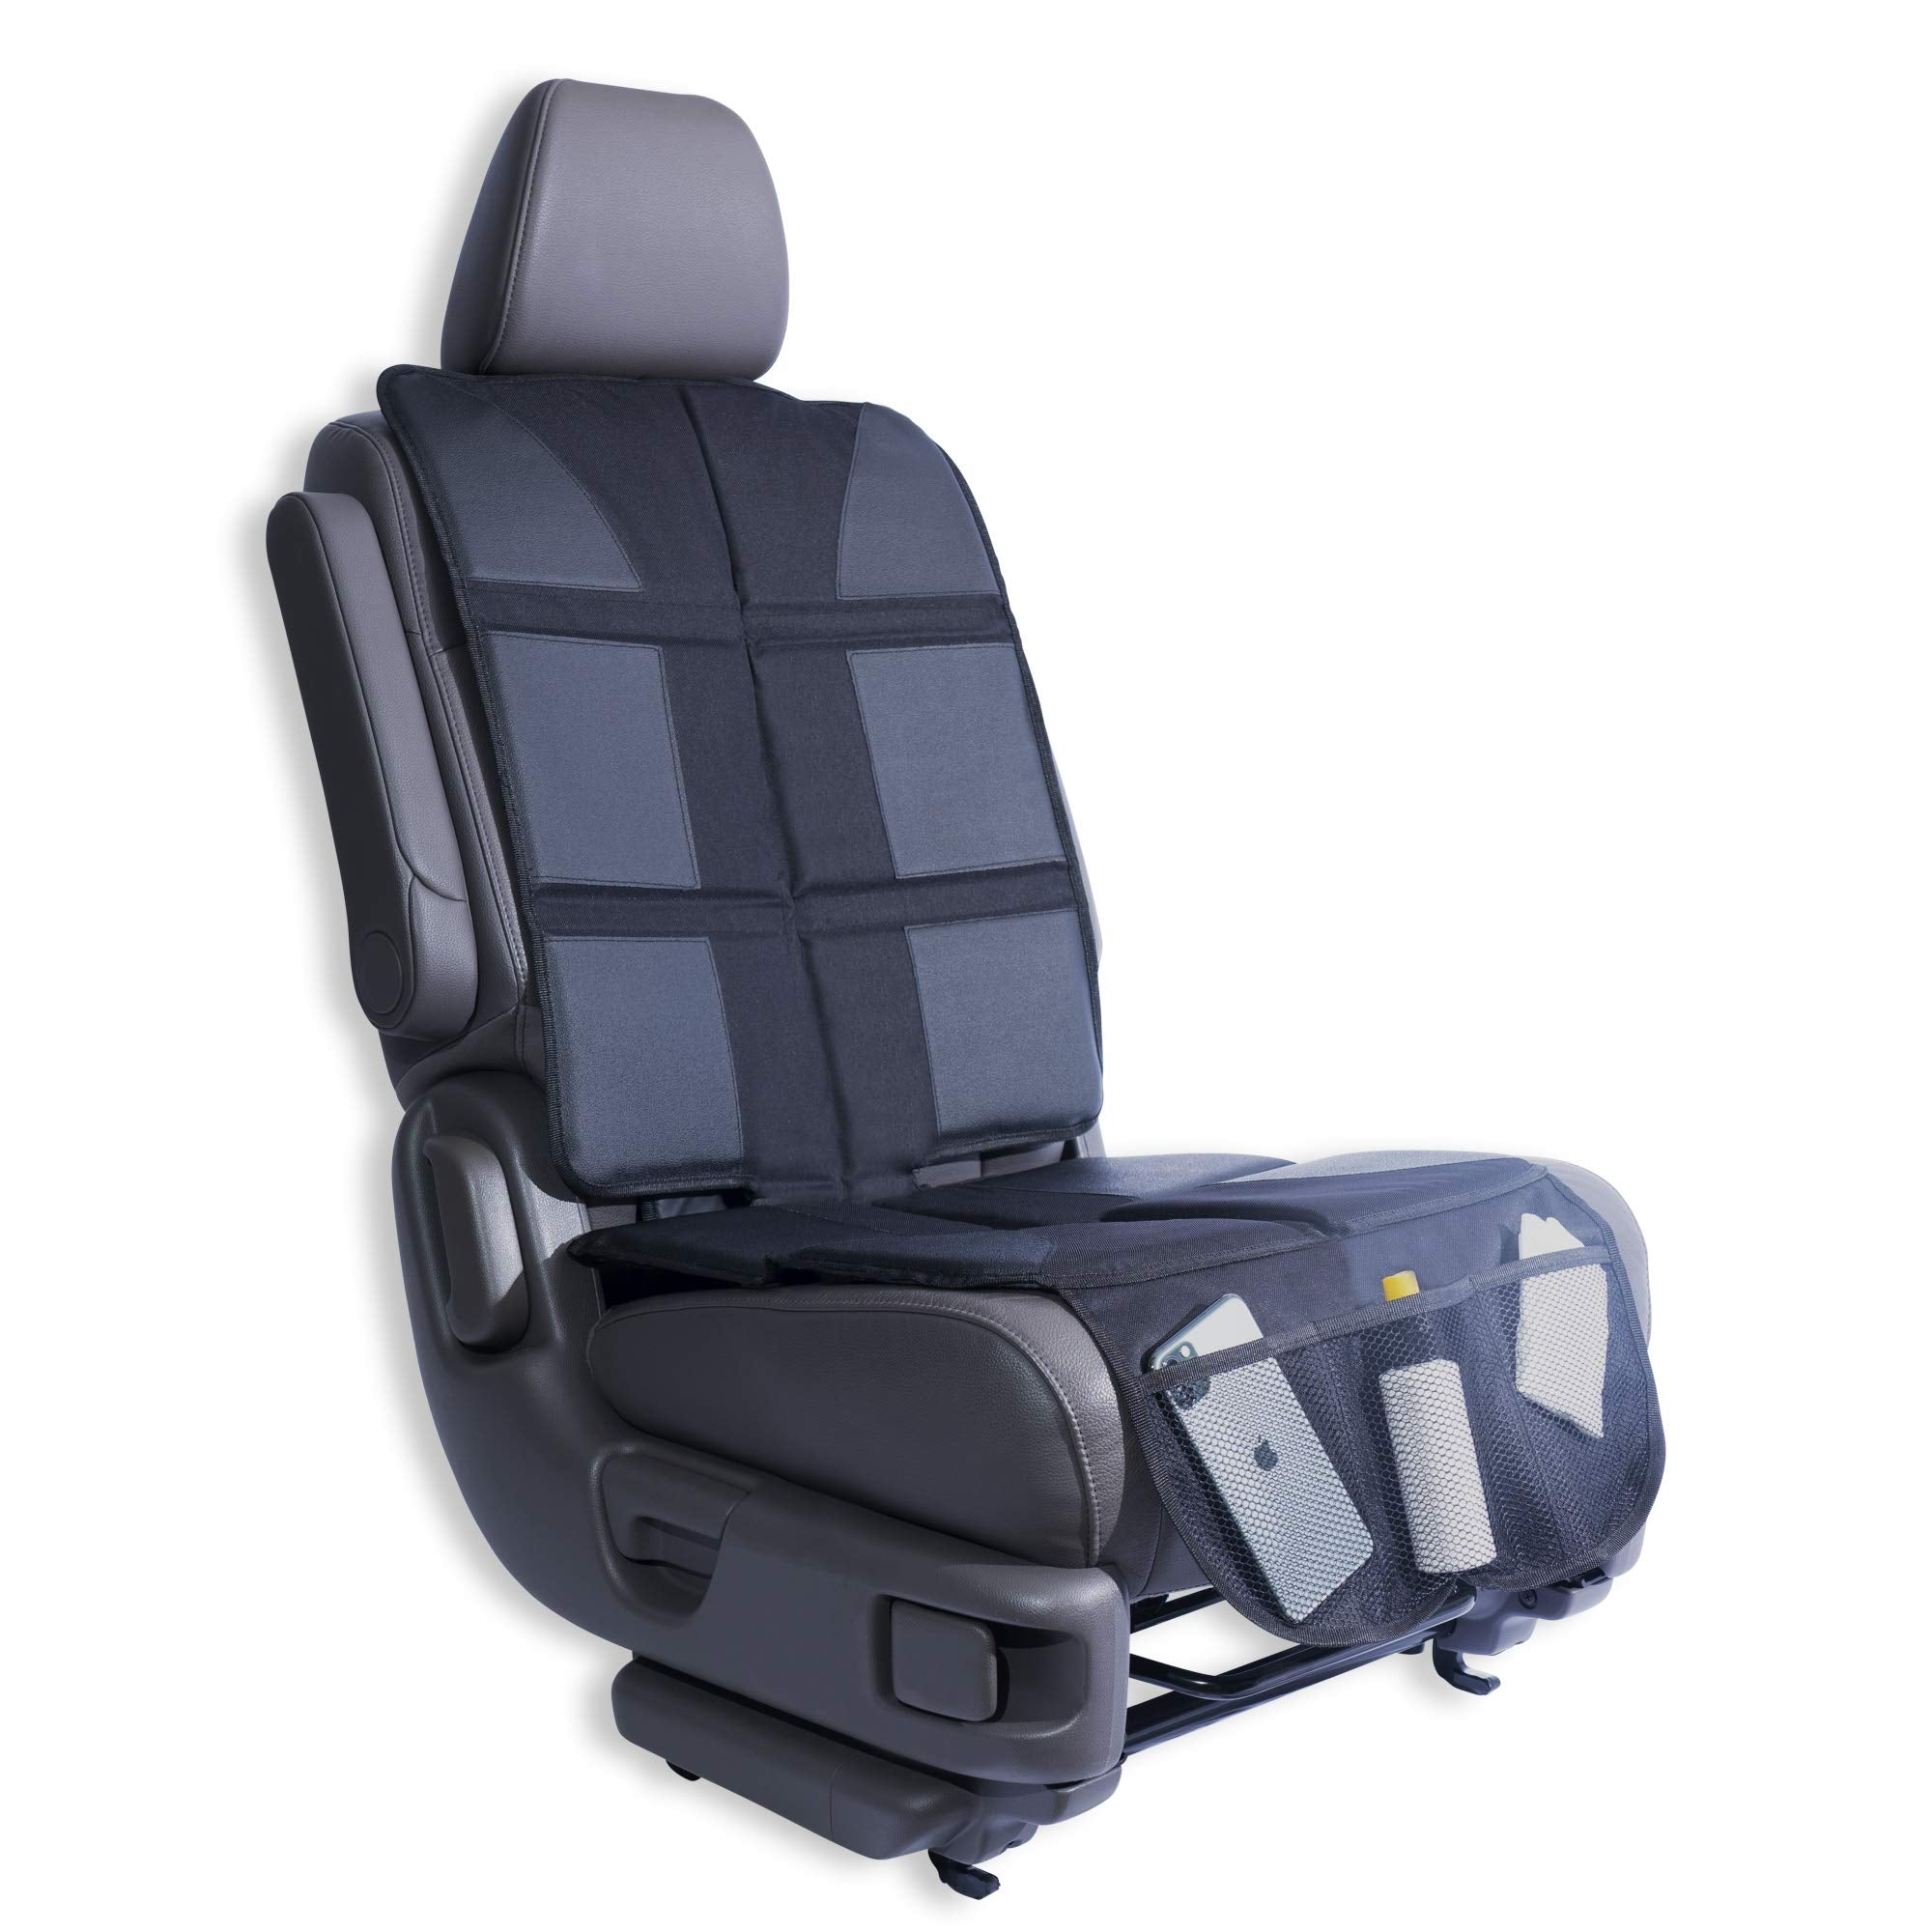 Car Seat Protector With Two Huge Pockets